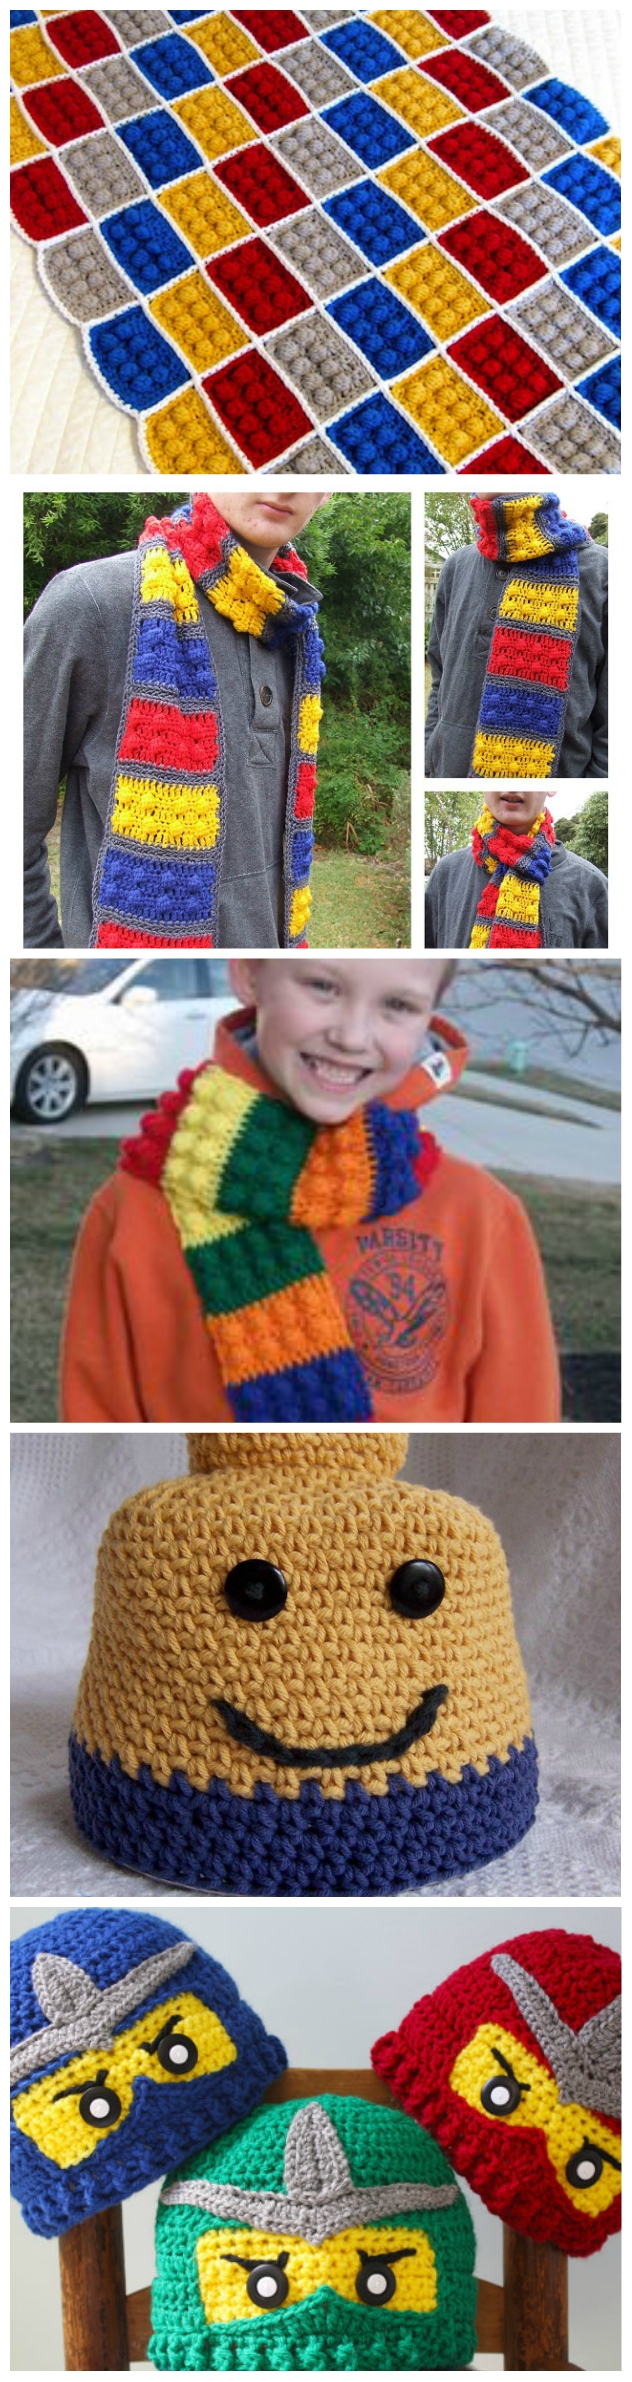 How to Crochet Lego Pattern